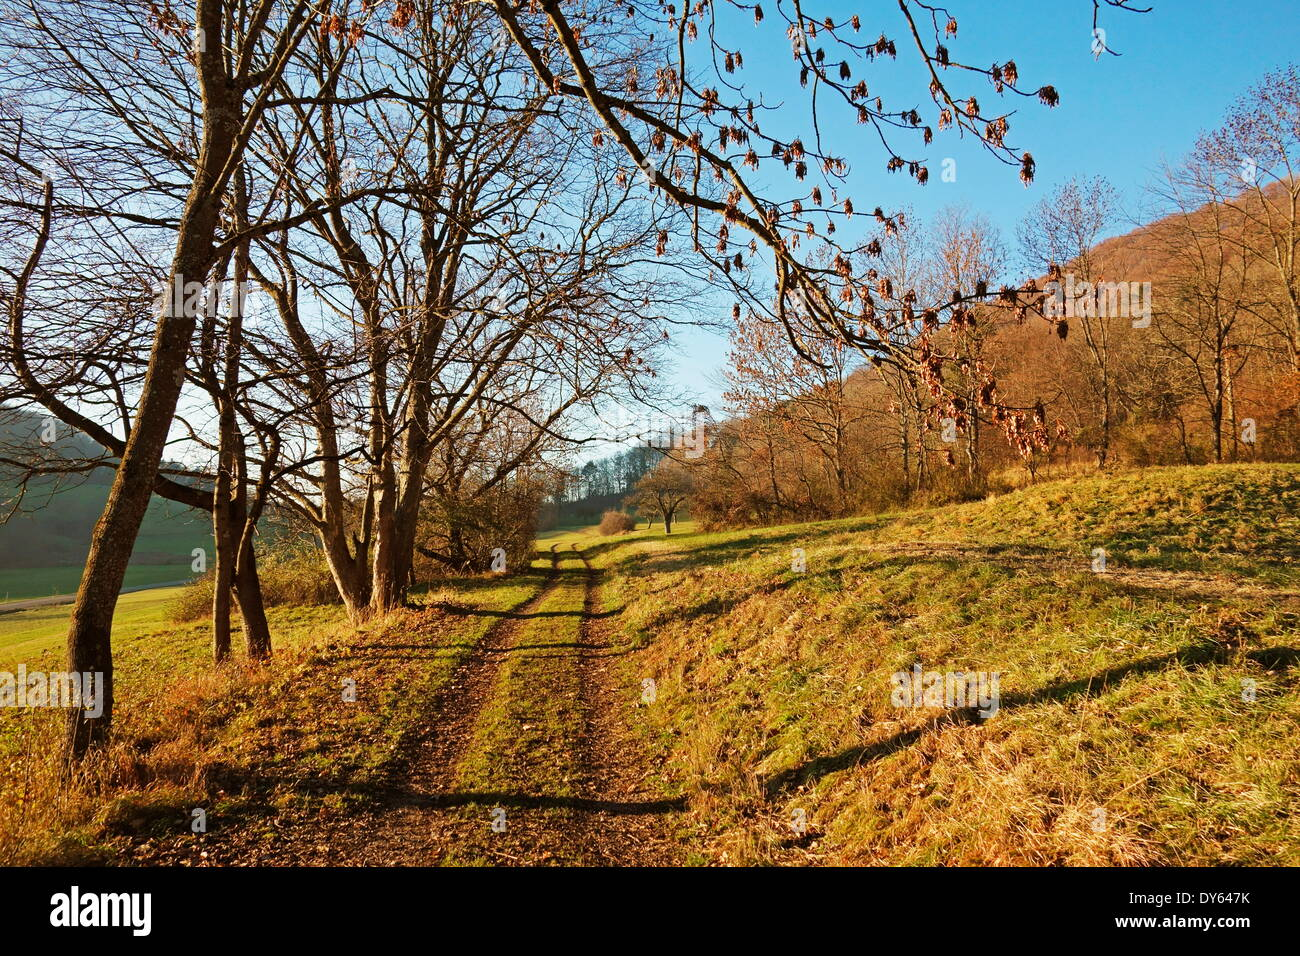 Country road, Swabian Alb, Baden-Wurttemberg, Germany, Europe - Stock Image